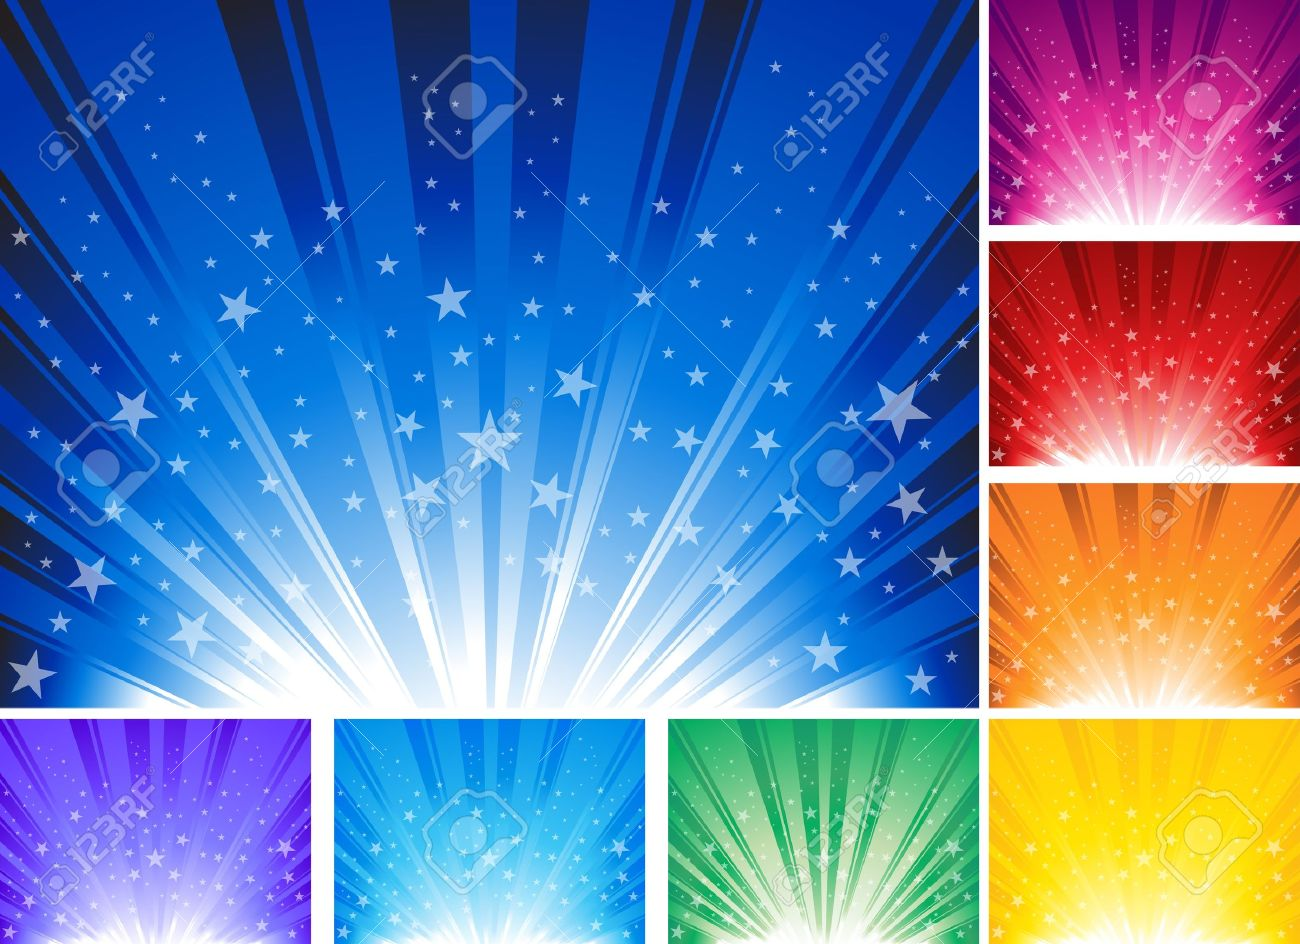 Abstract background with stars. Illustration Ai 10 document. - 11661323